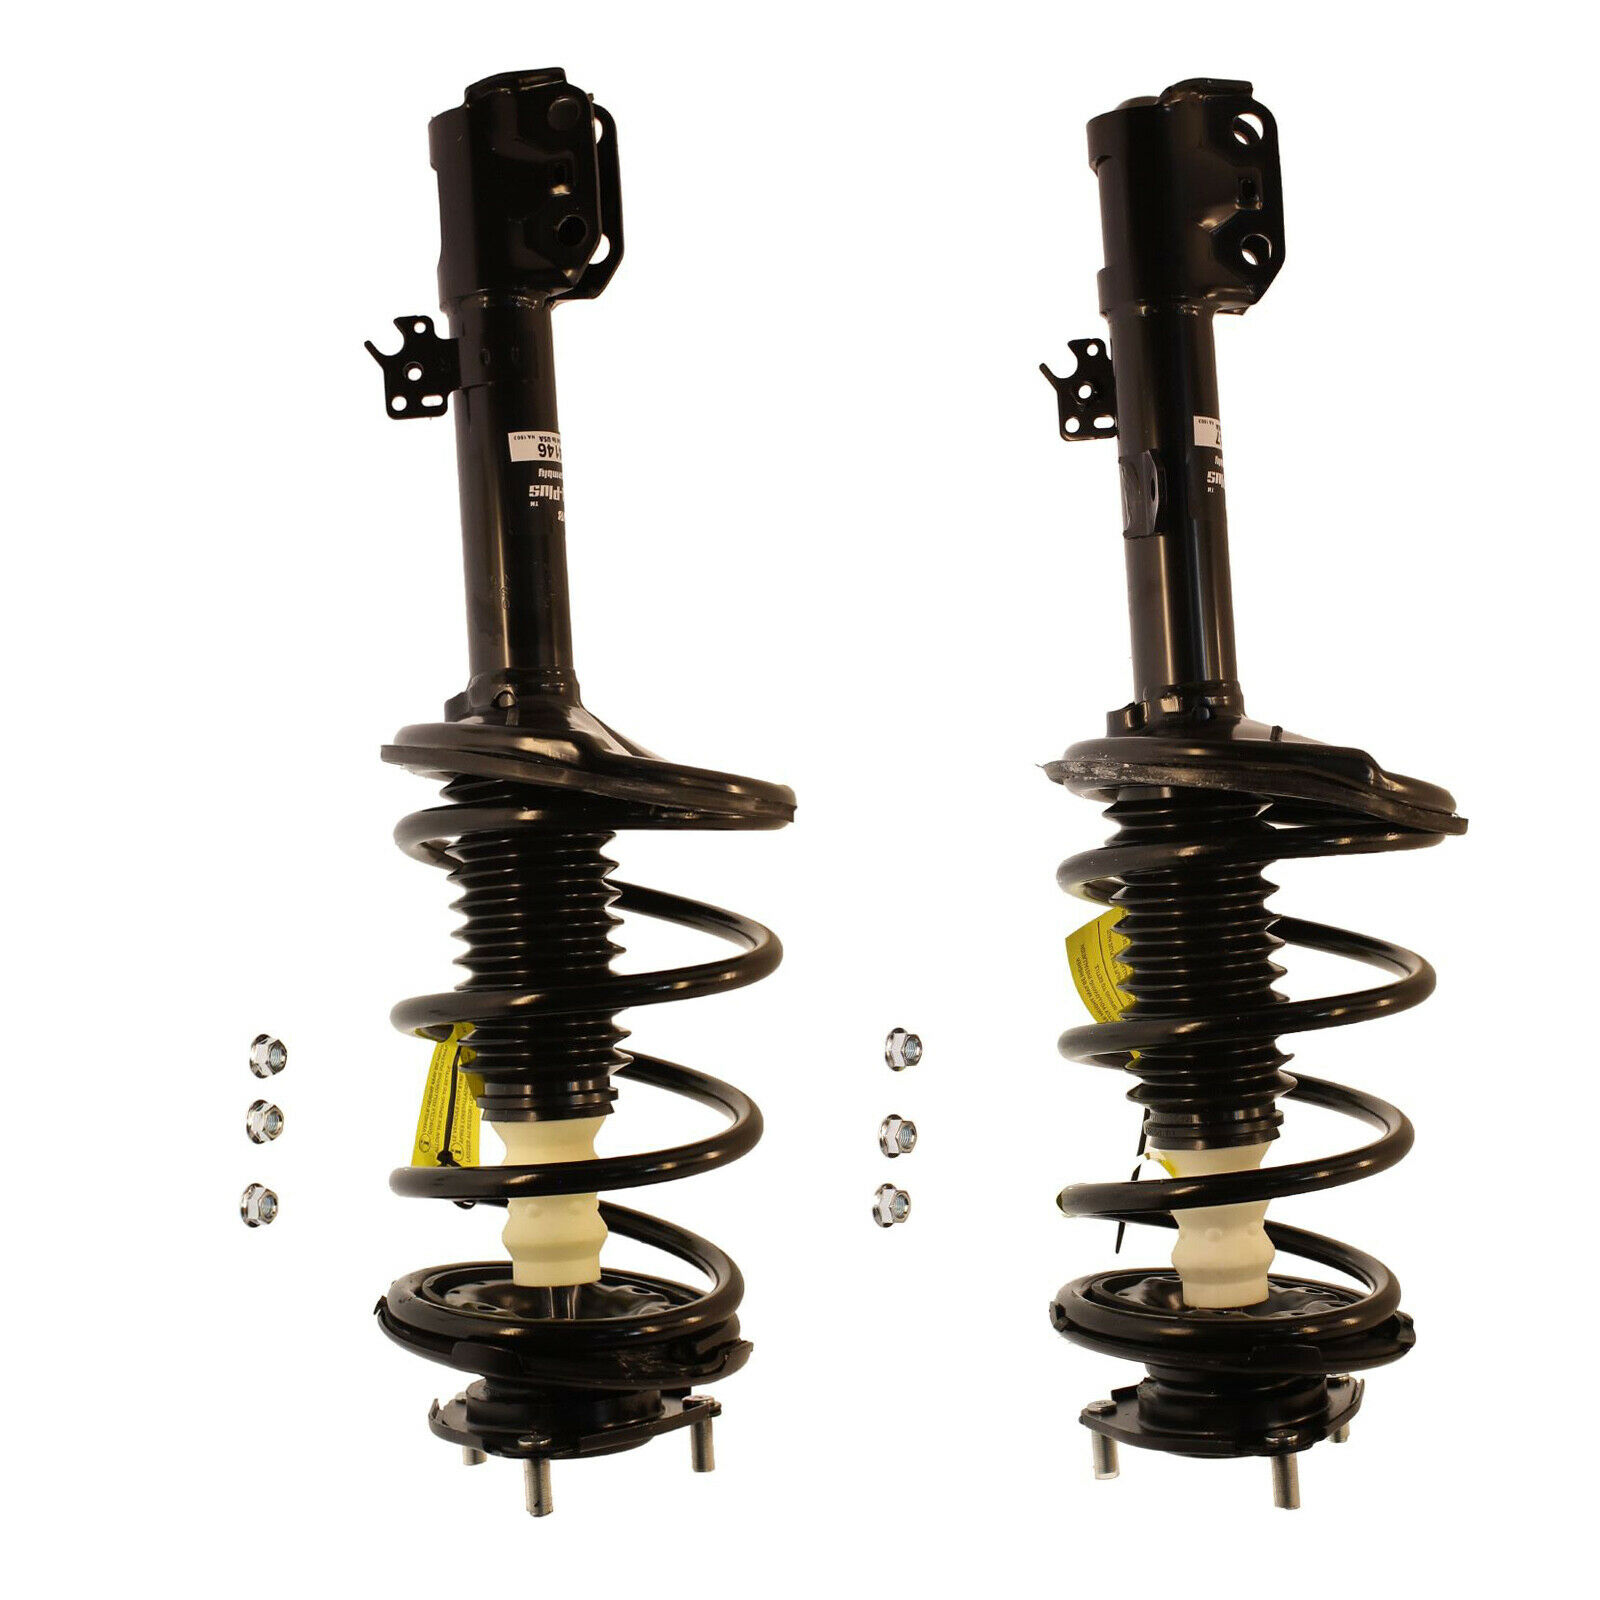 KYB Strut Plus Shock /& Spring Assembly Set for 1998-2002 Honda Accord FWD